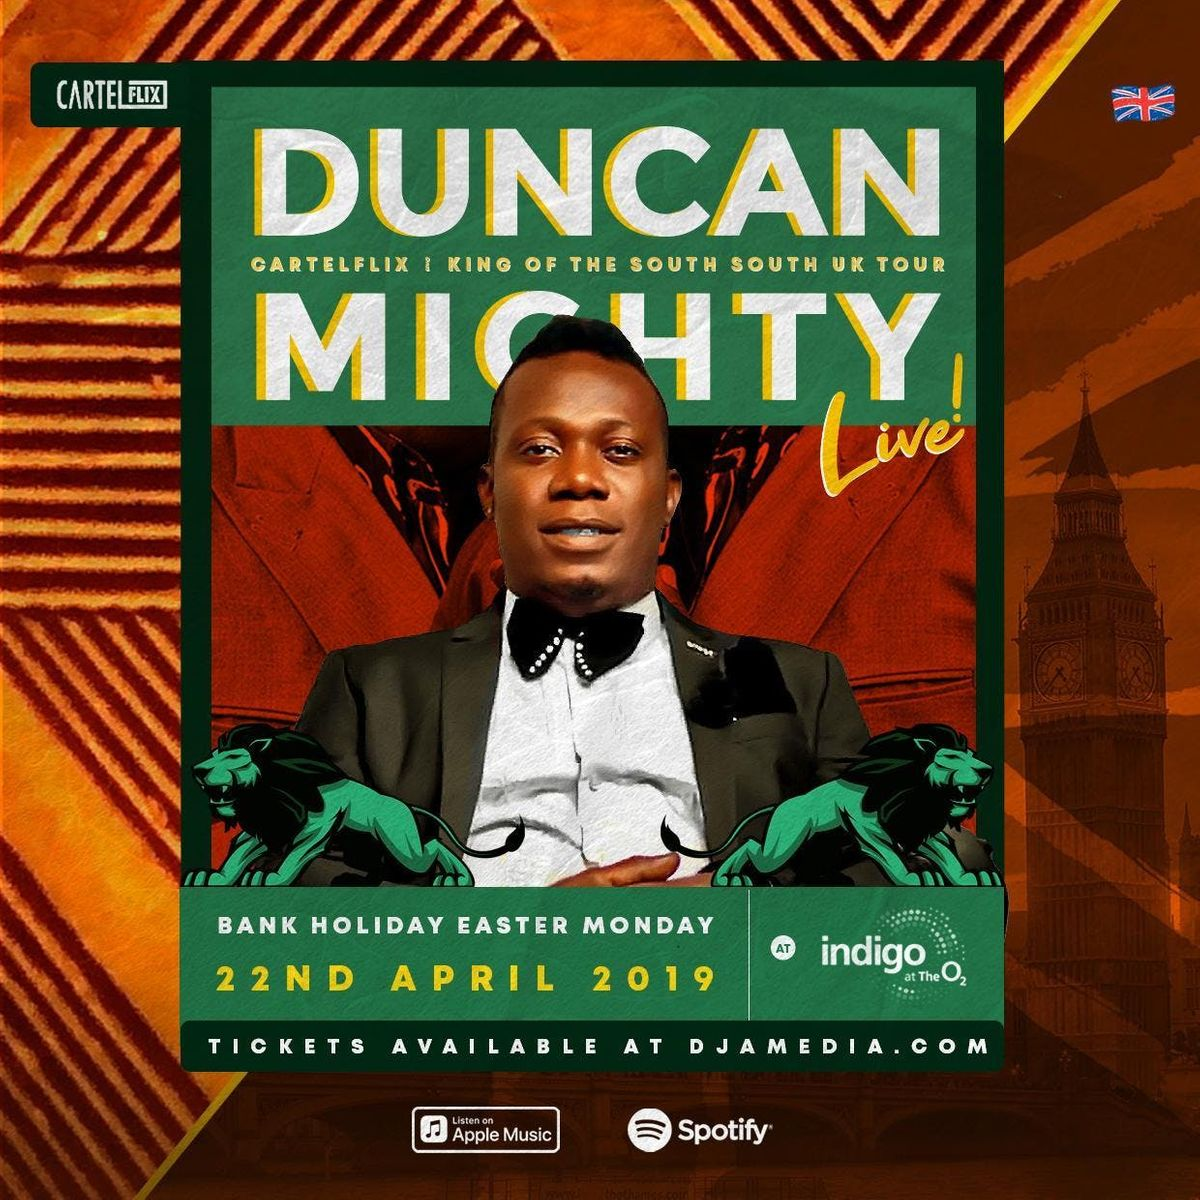 DUNCAN MIGHTY Live in London at IndigO2